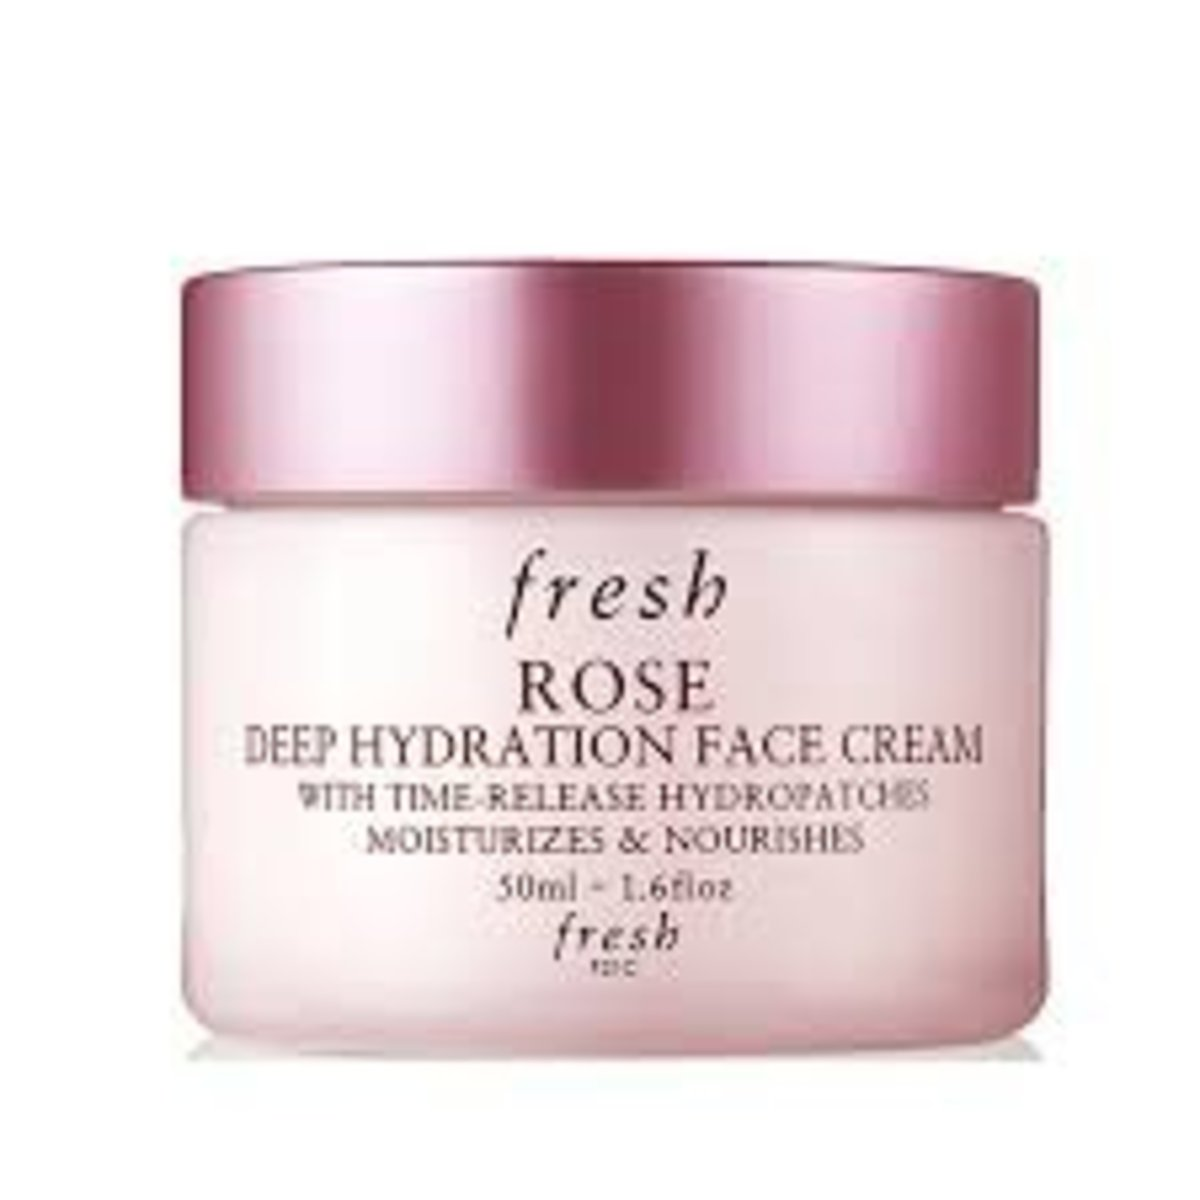 Rose Deep Hydration Face Cream 50ml (Parallel Import)